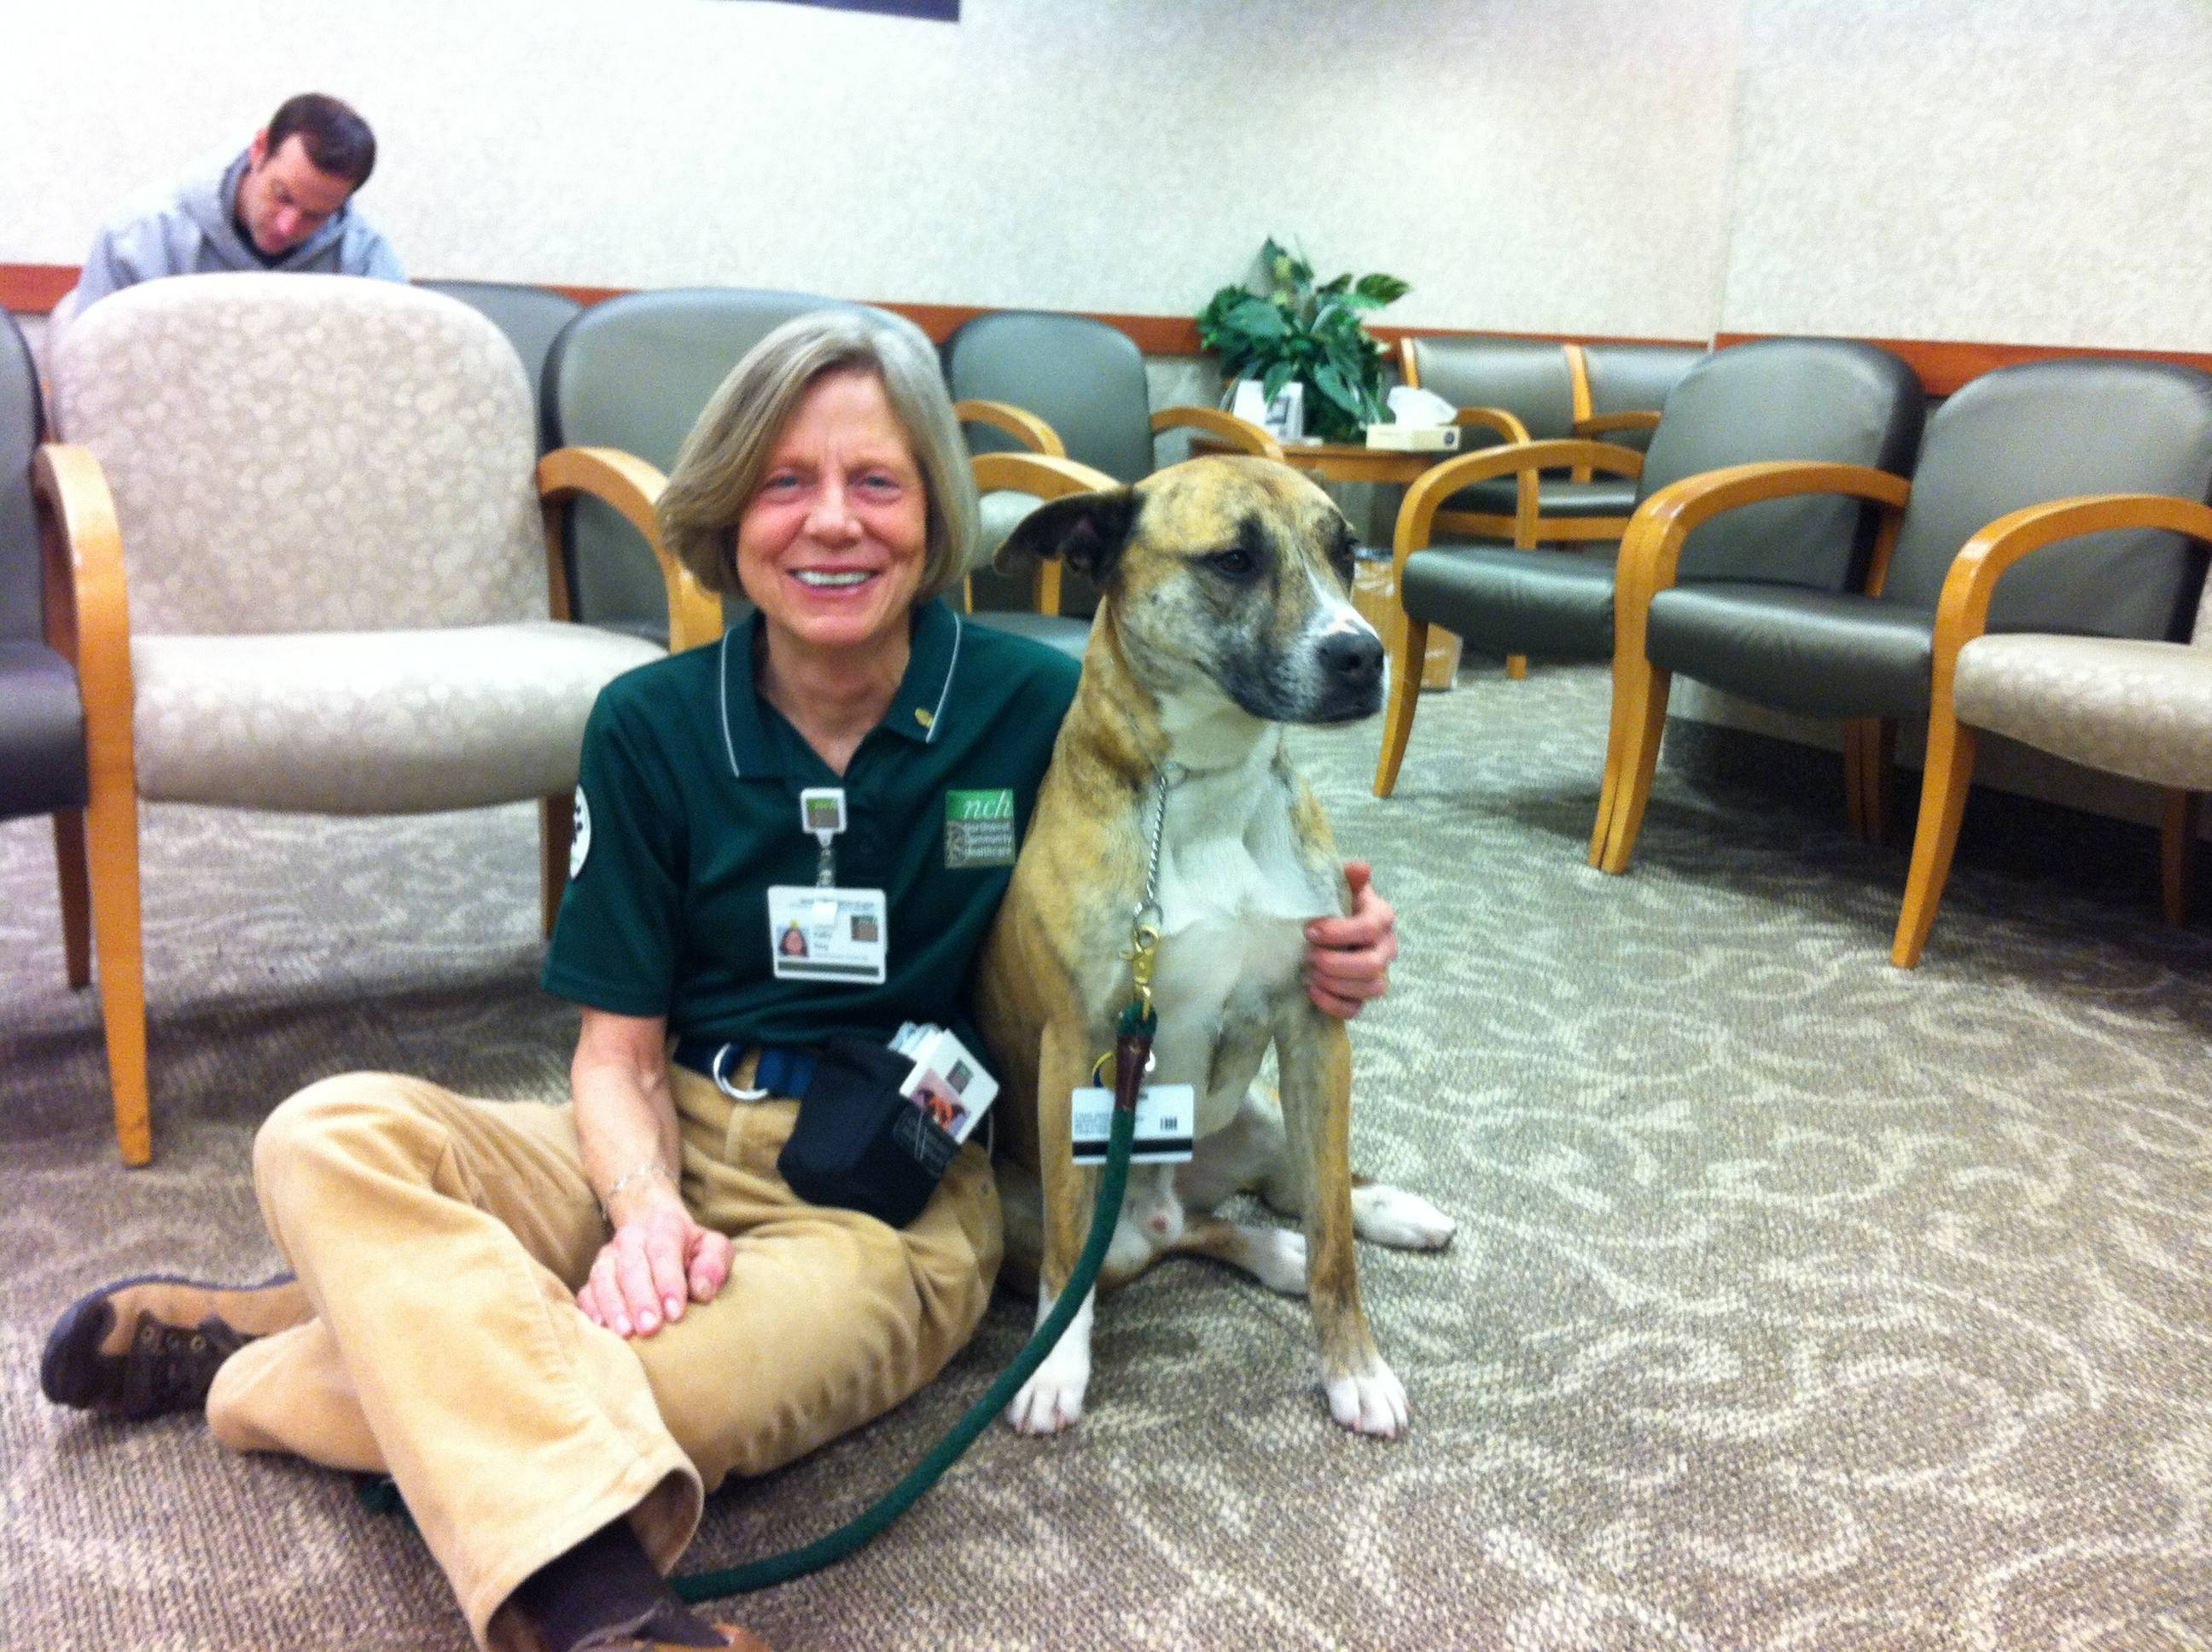 Kathy King, manager of animal-assisted therapy at Northwest Community Hospital in Arlington Heights, with one of the dozens of dogs that visits patients to cheer them up during recovery. The hospital is looking for more dogs and handlers to join the program.